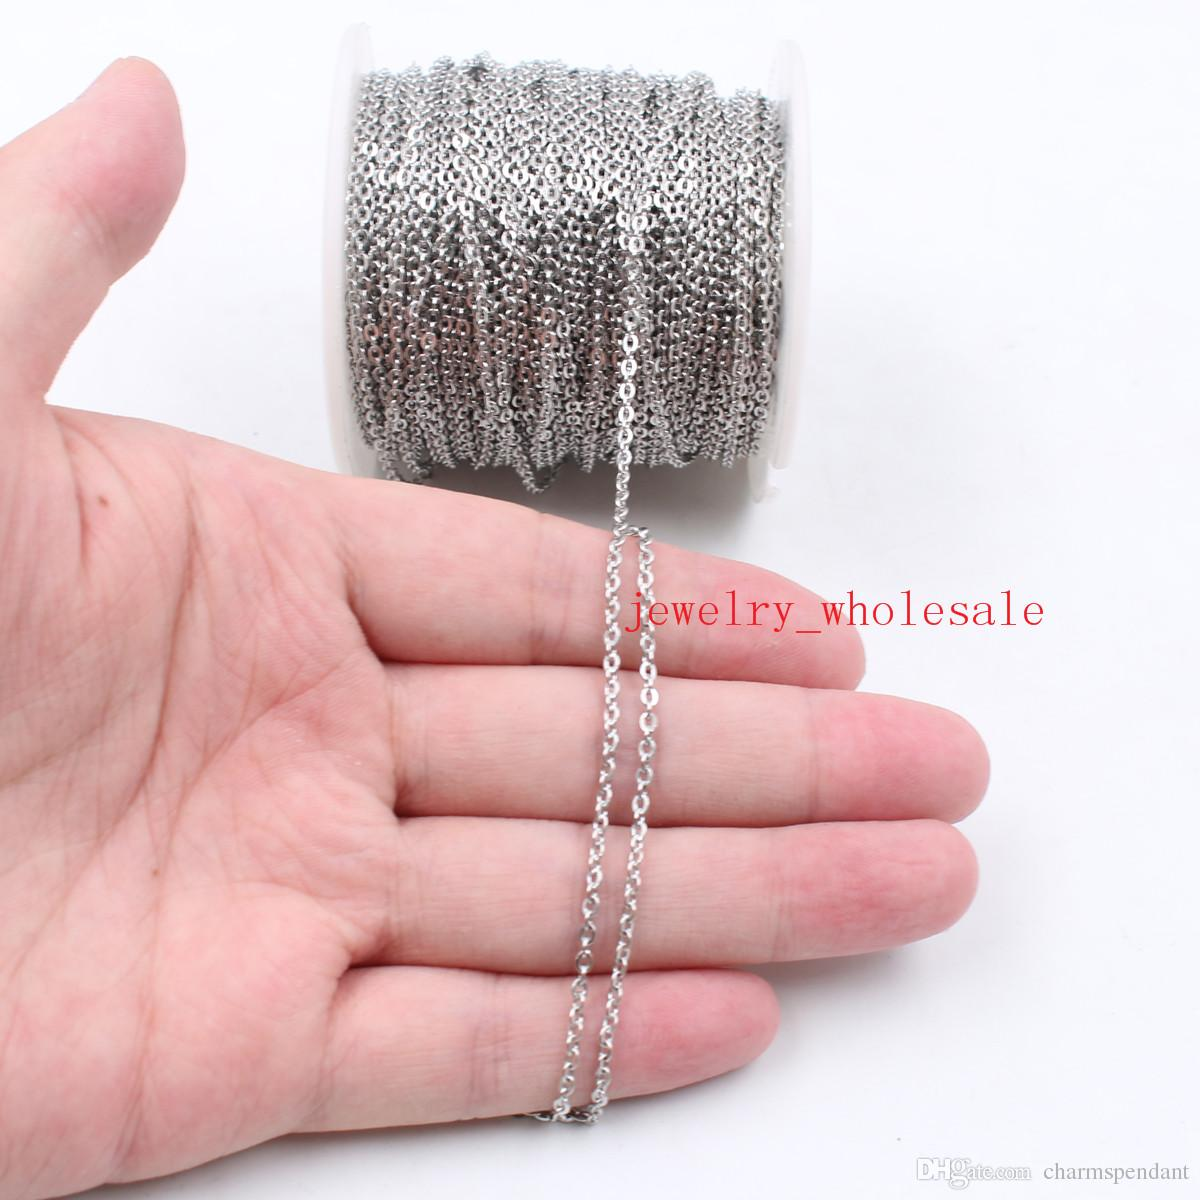 50meter/ Roll Large wholesale in bulk Jewelry Finding Chain silver Stainless Steel strong Flat Oval Rolo Cross Chain FIT pendant DIY